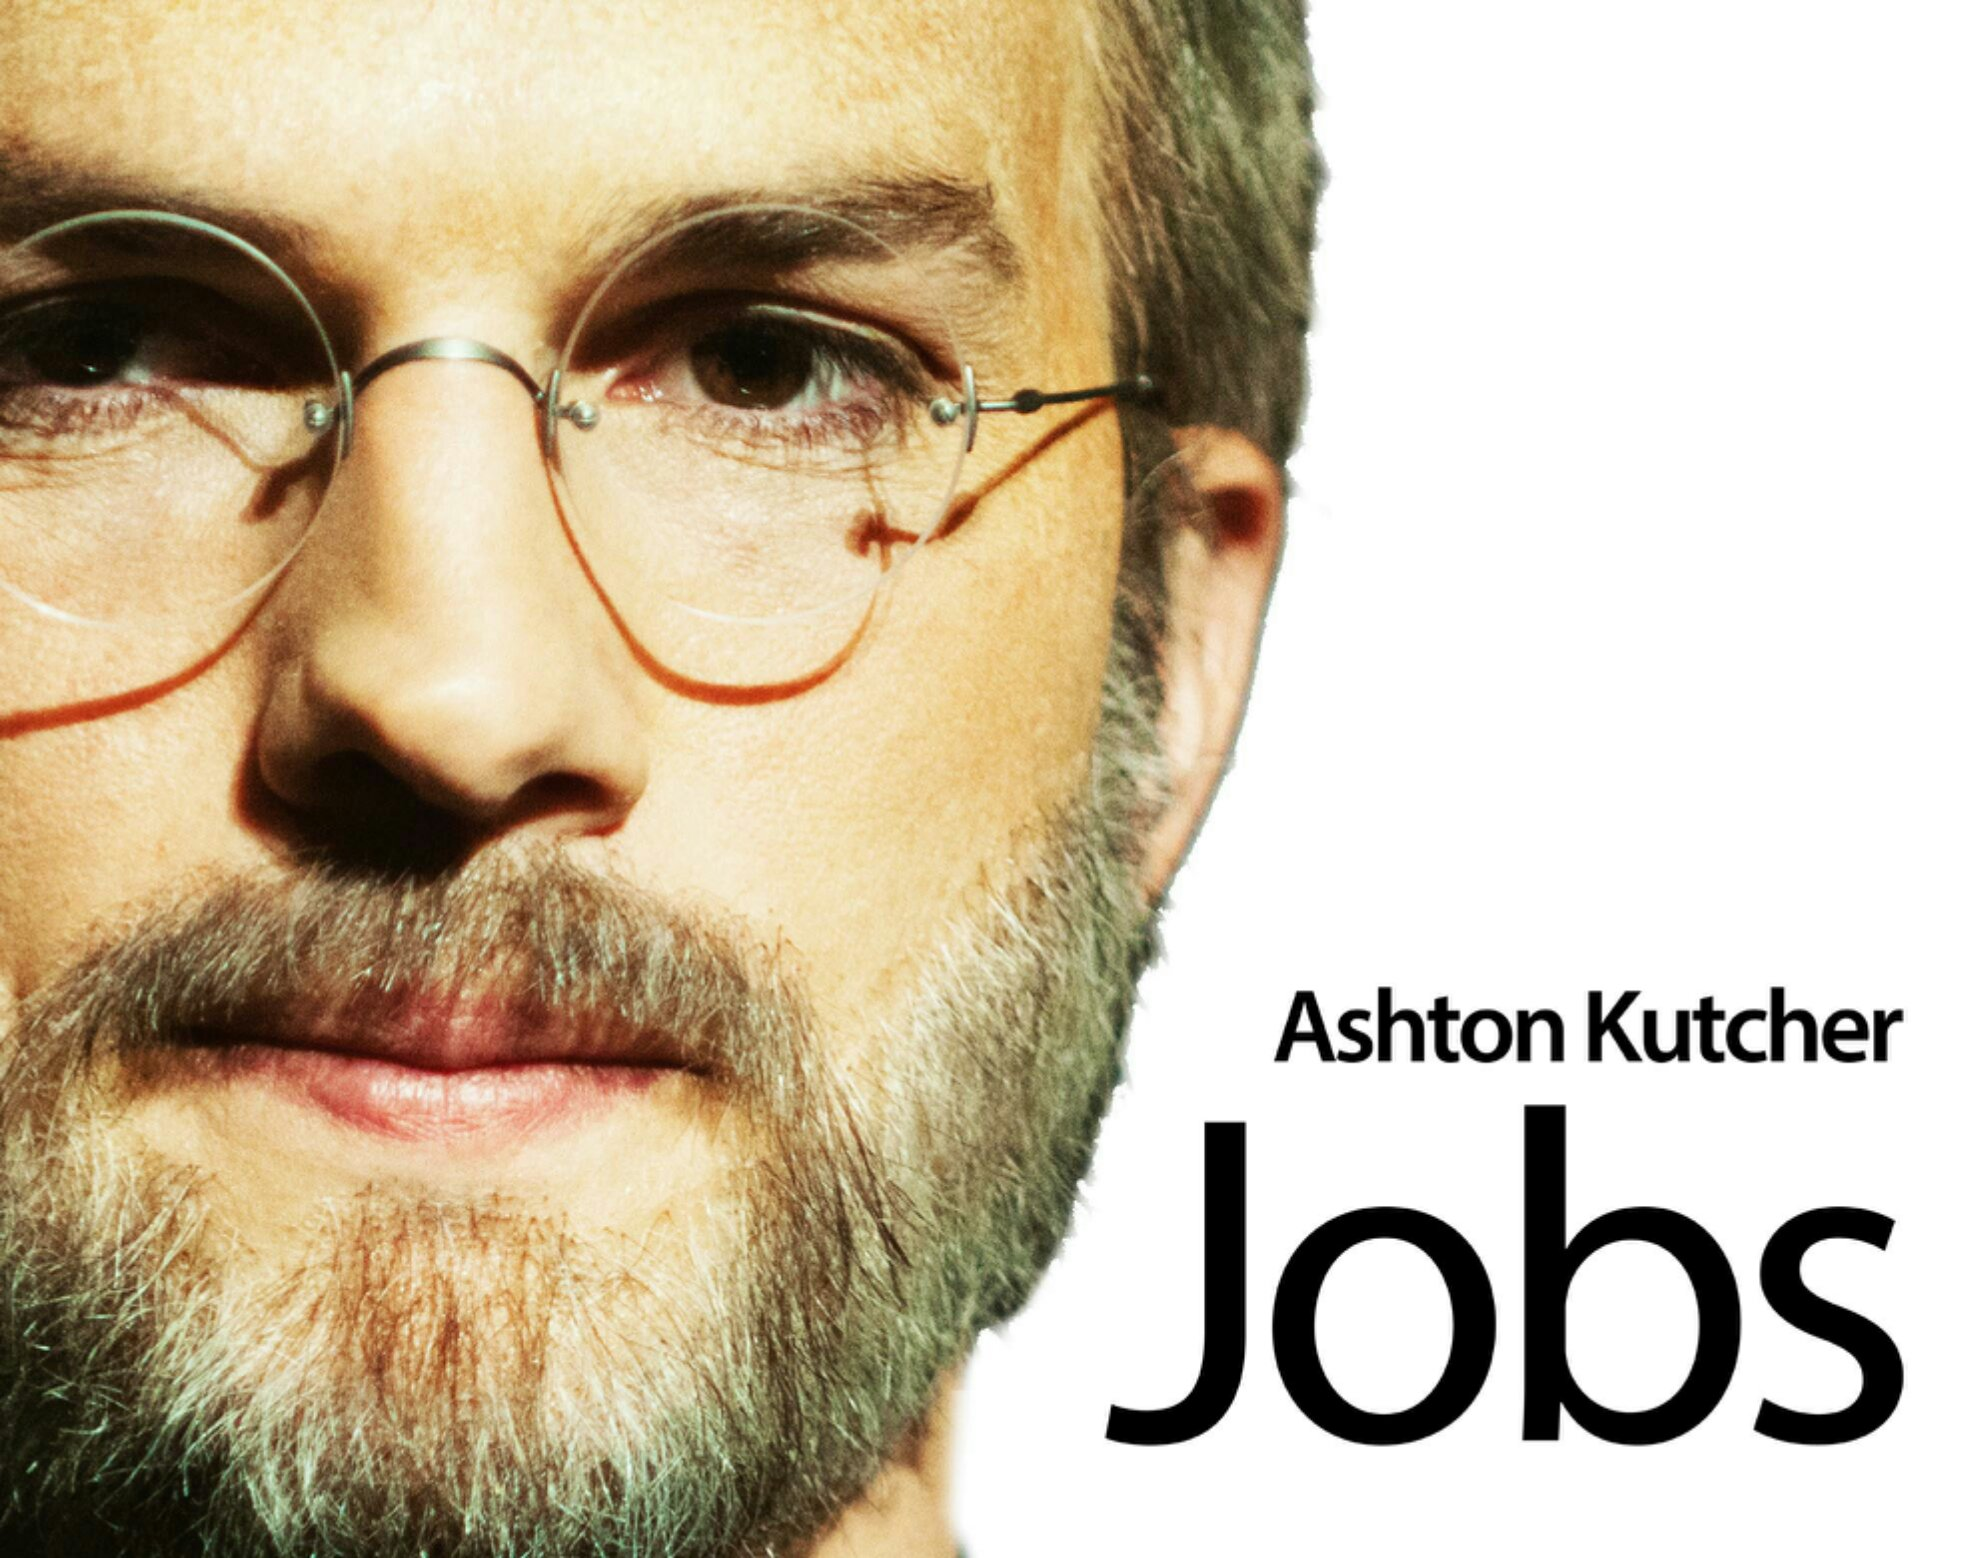 Jobs Movie Wallpaper & Picture